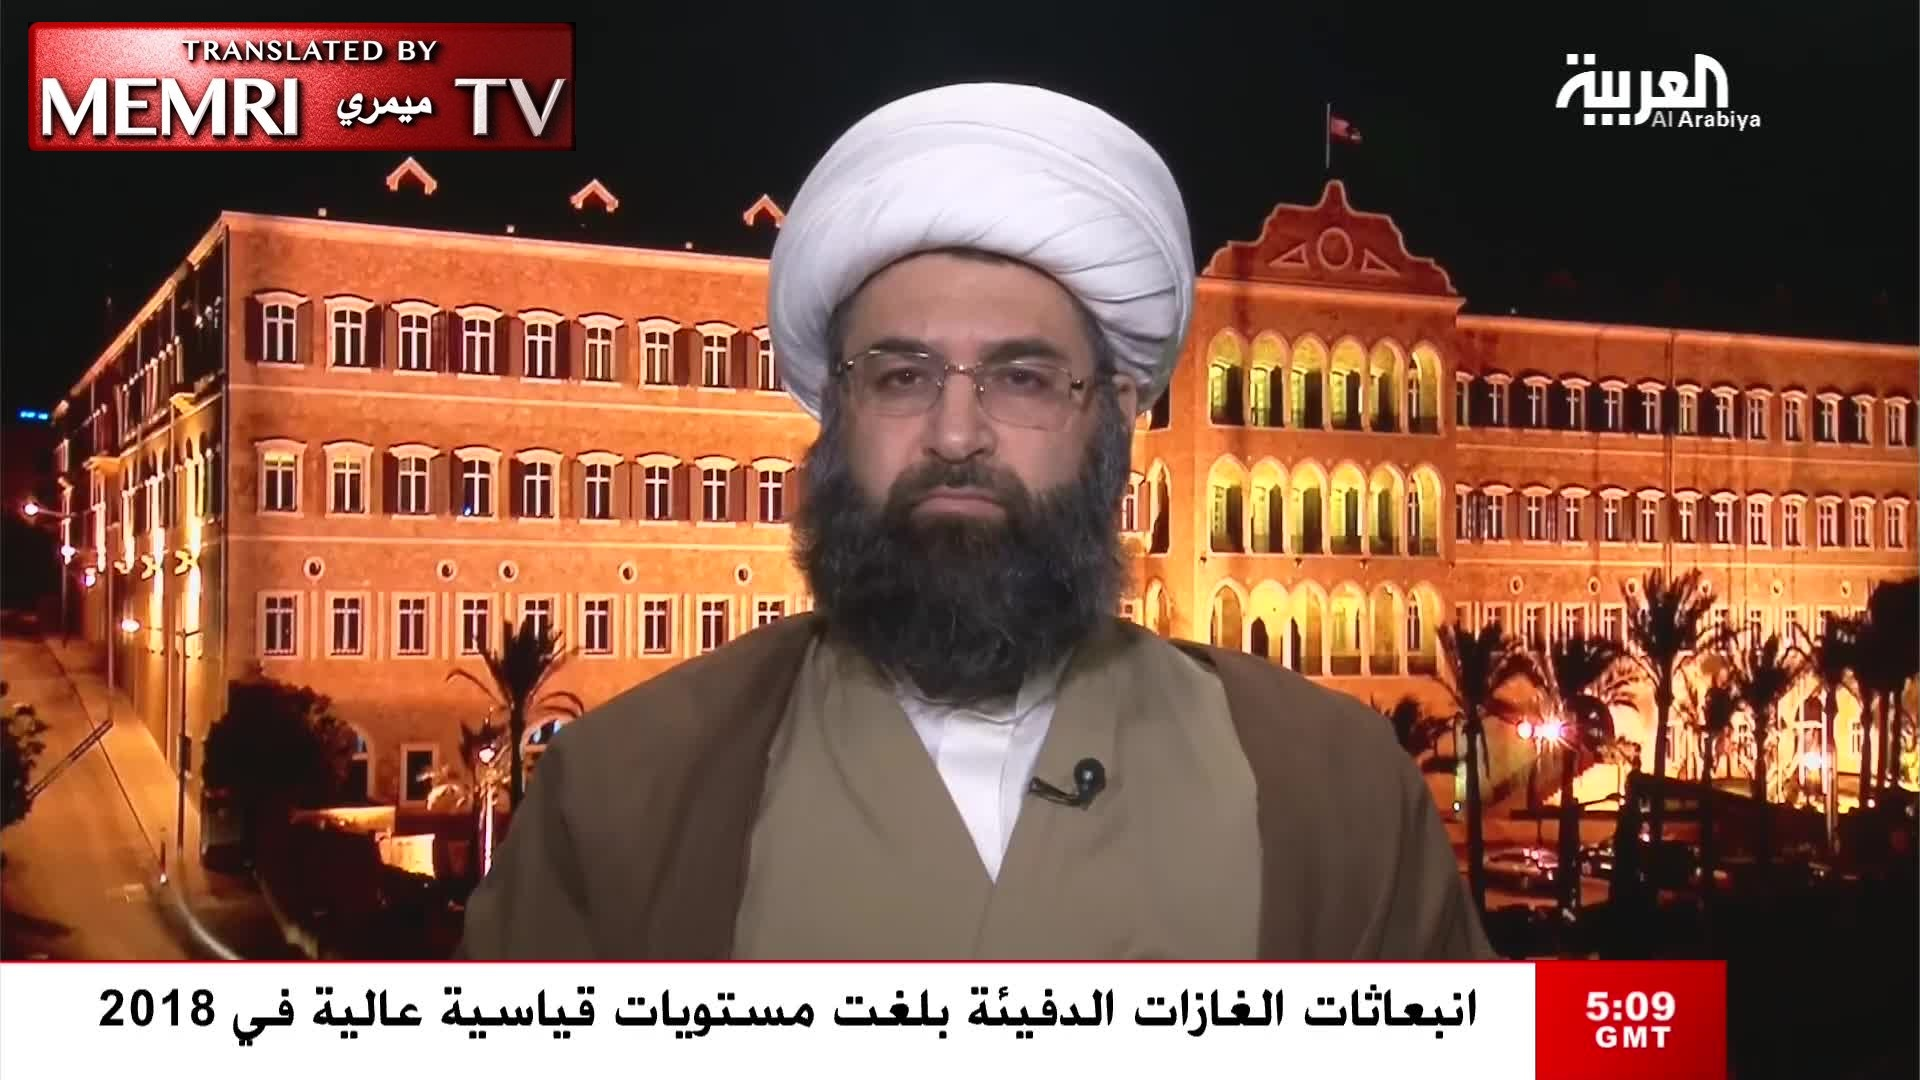 Lebanese Shiite Scholar Mohammad Al-Hajj Ali Al-Amili: A Modern, Democratic Lebanon Is in Everybody's Best Interest, Including Shiites; Lebanese and Iraqi Shiites Are Disappointed with the Islamic Movements